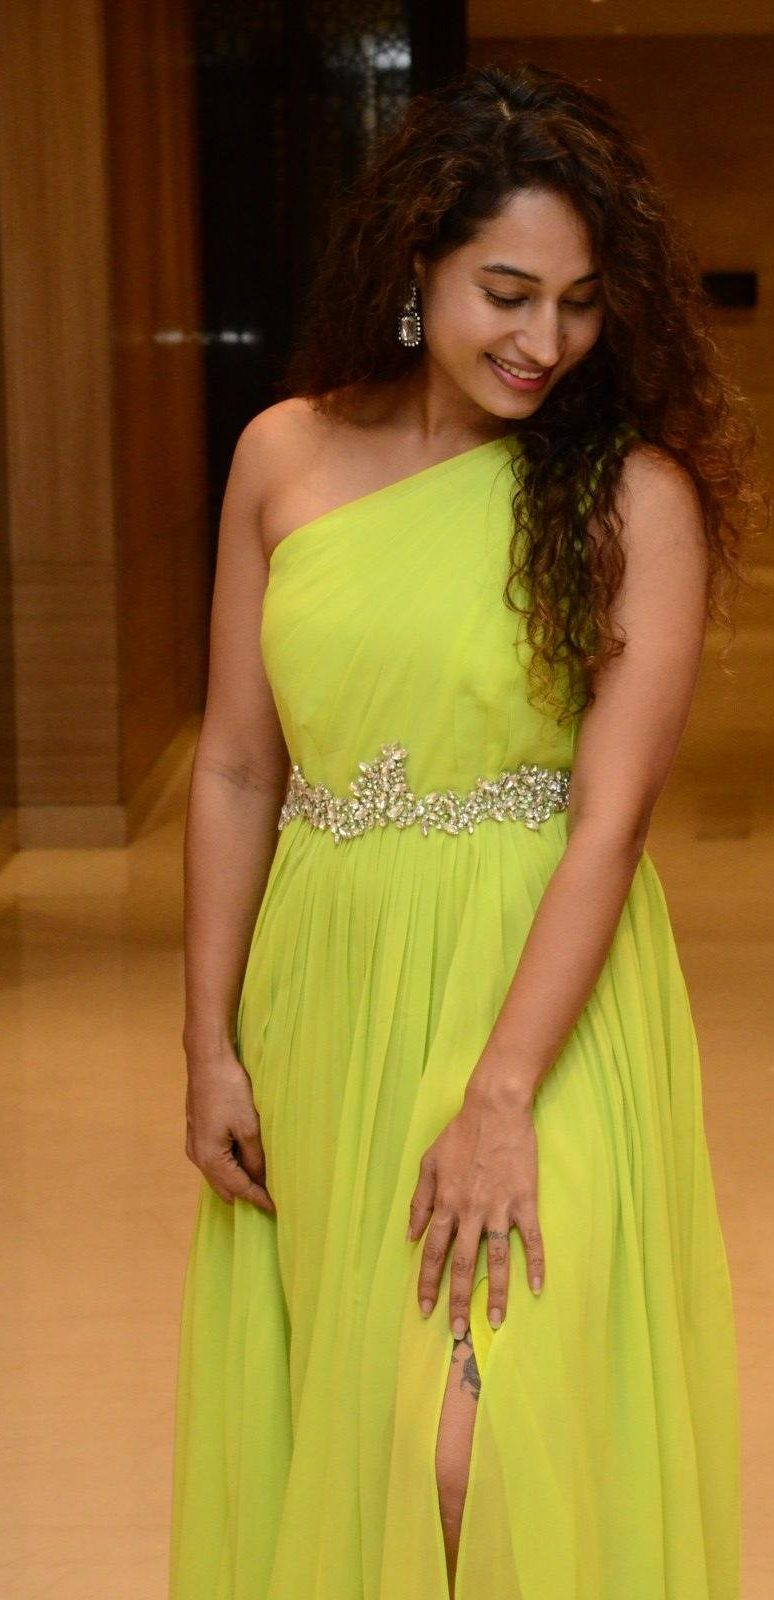 Pooja Ramachandran in a neon dress for powerplay pre-release event-2